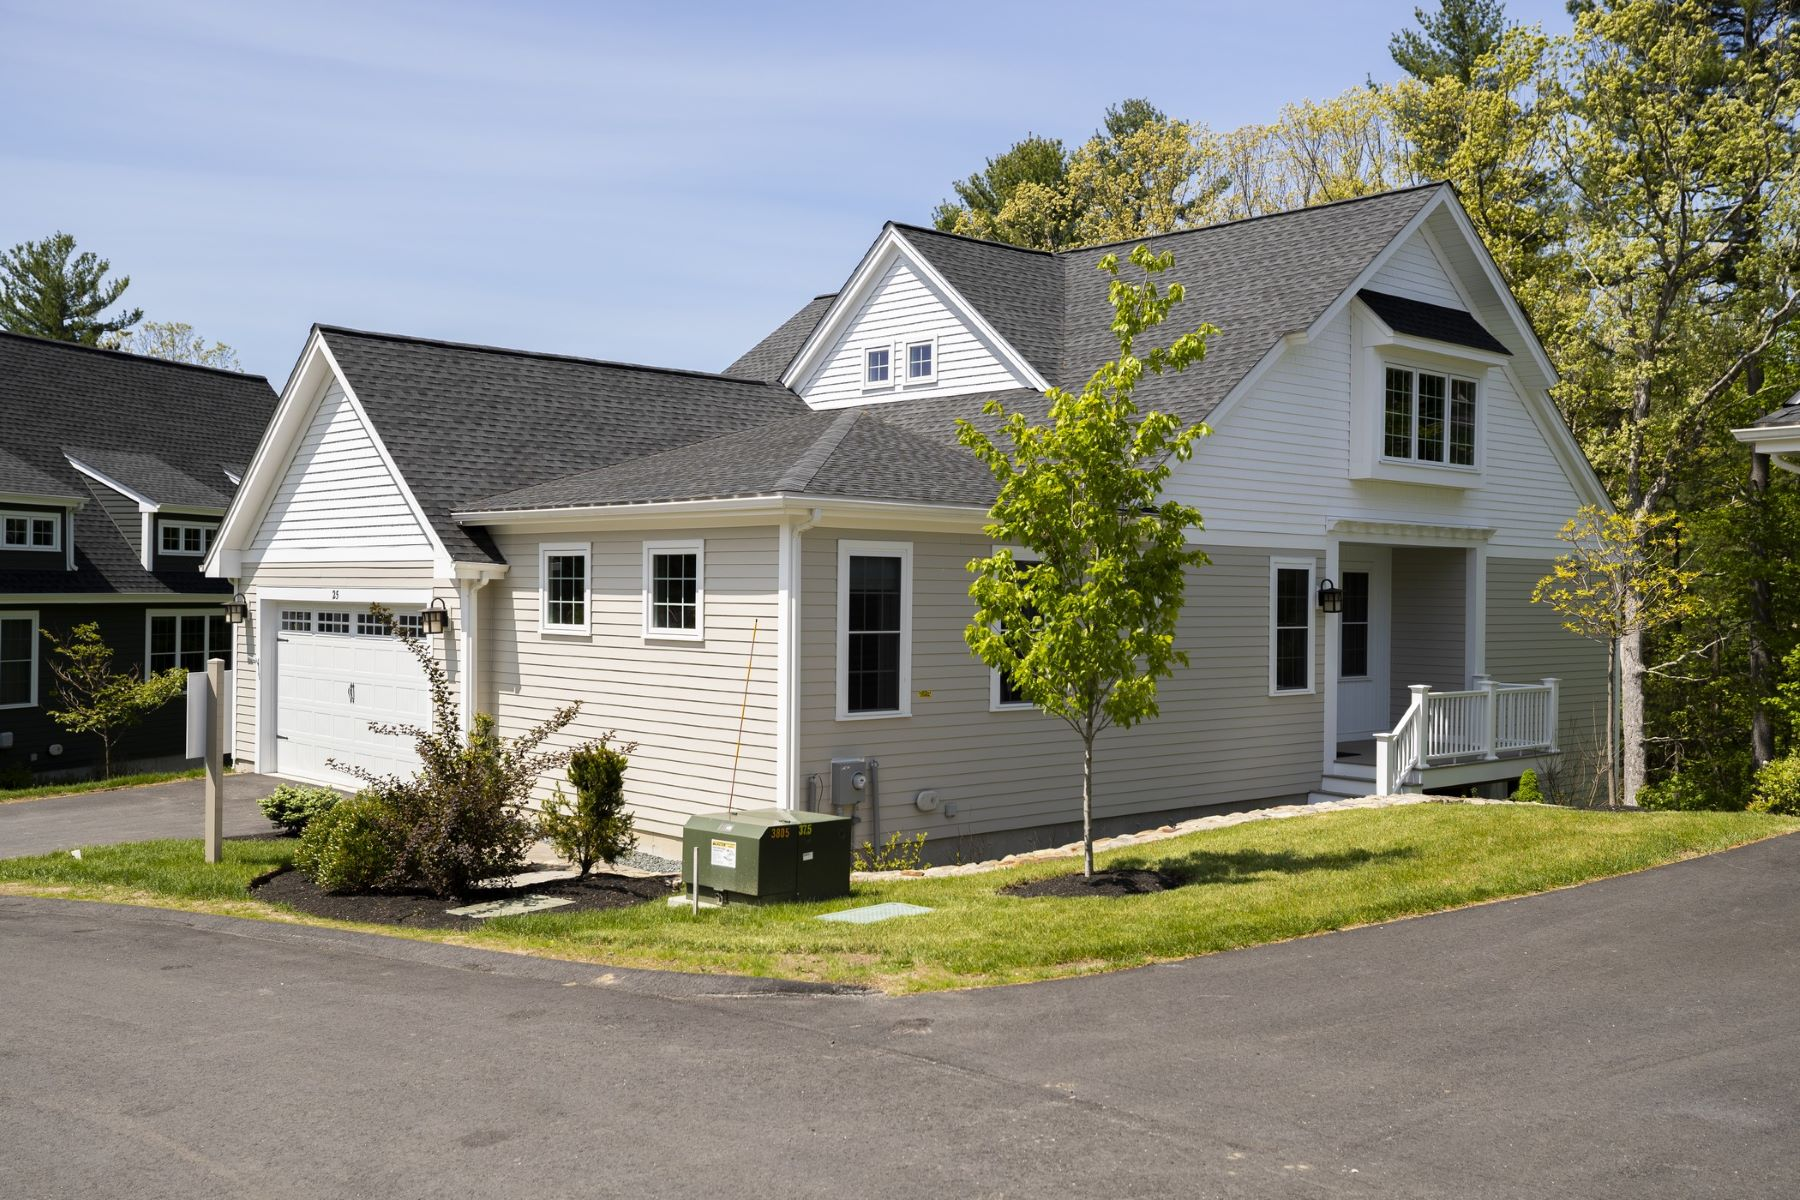 Condominiums for Sale at 25 Black Horse Place 3 Concord, Massachusetts 01742 United States